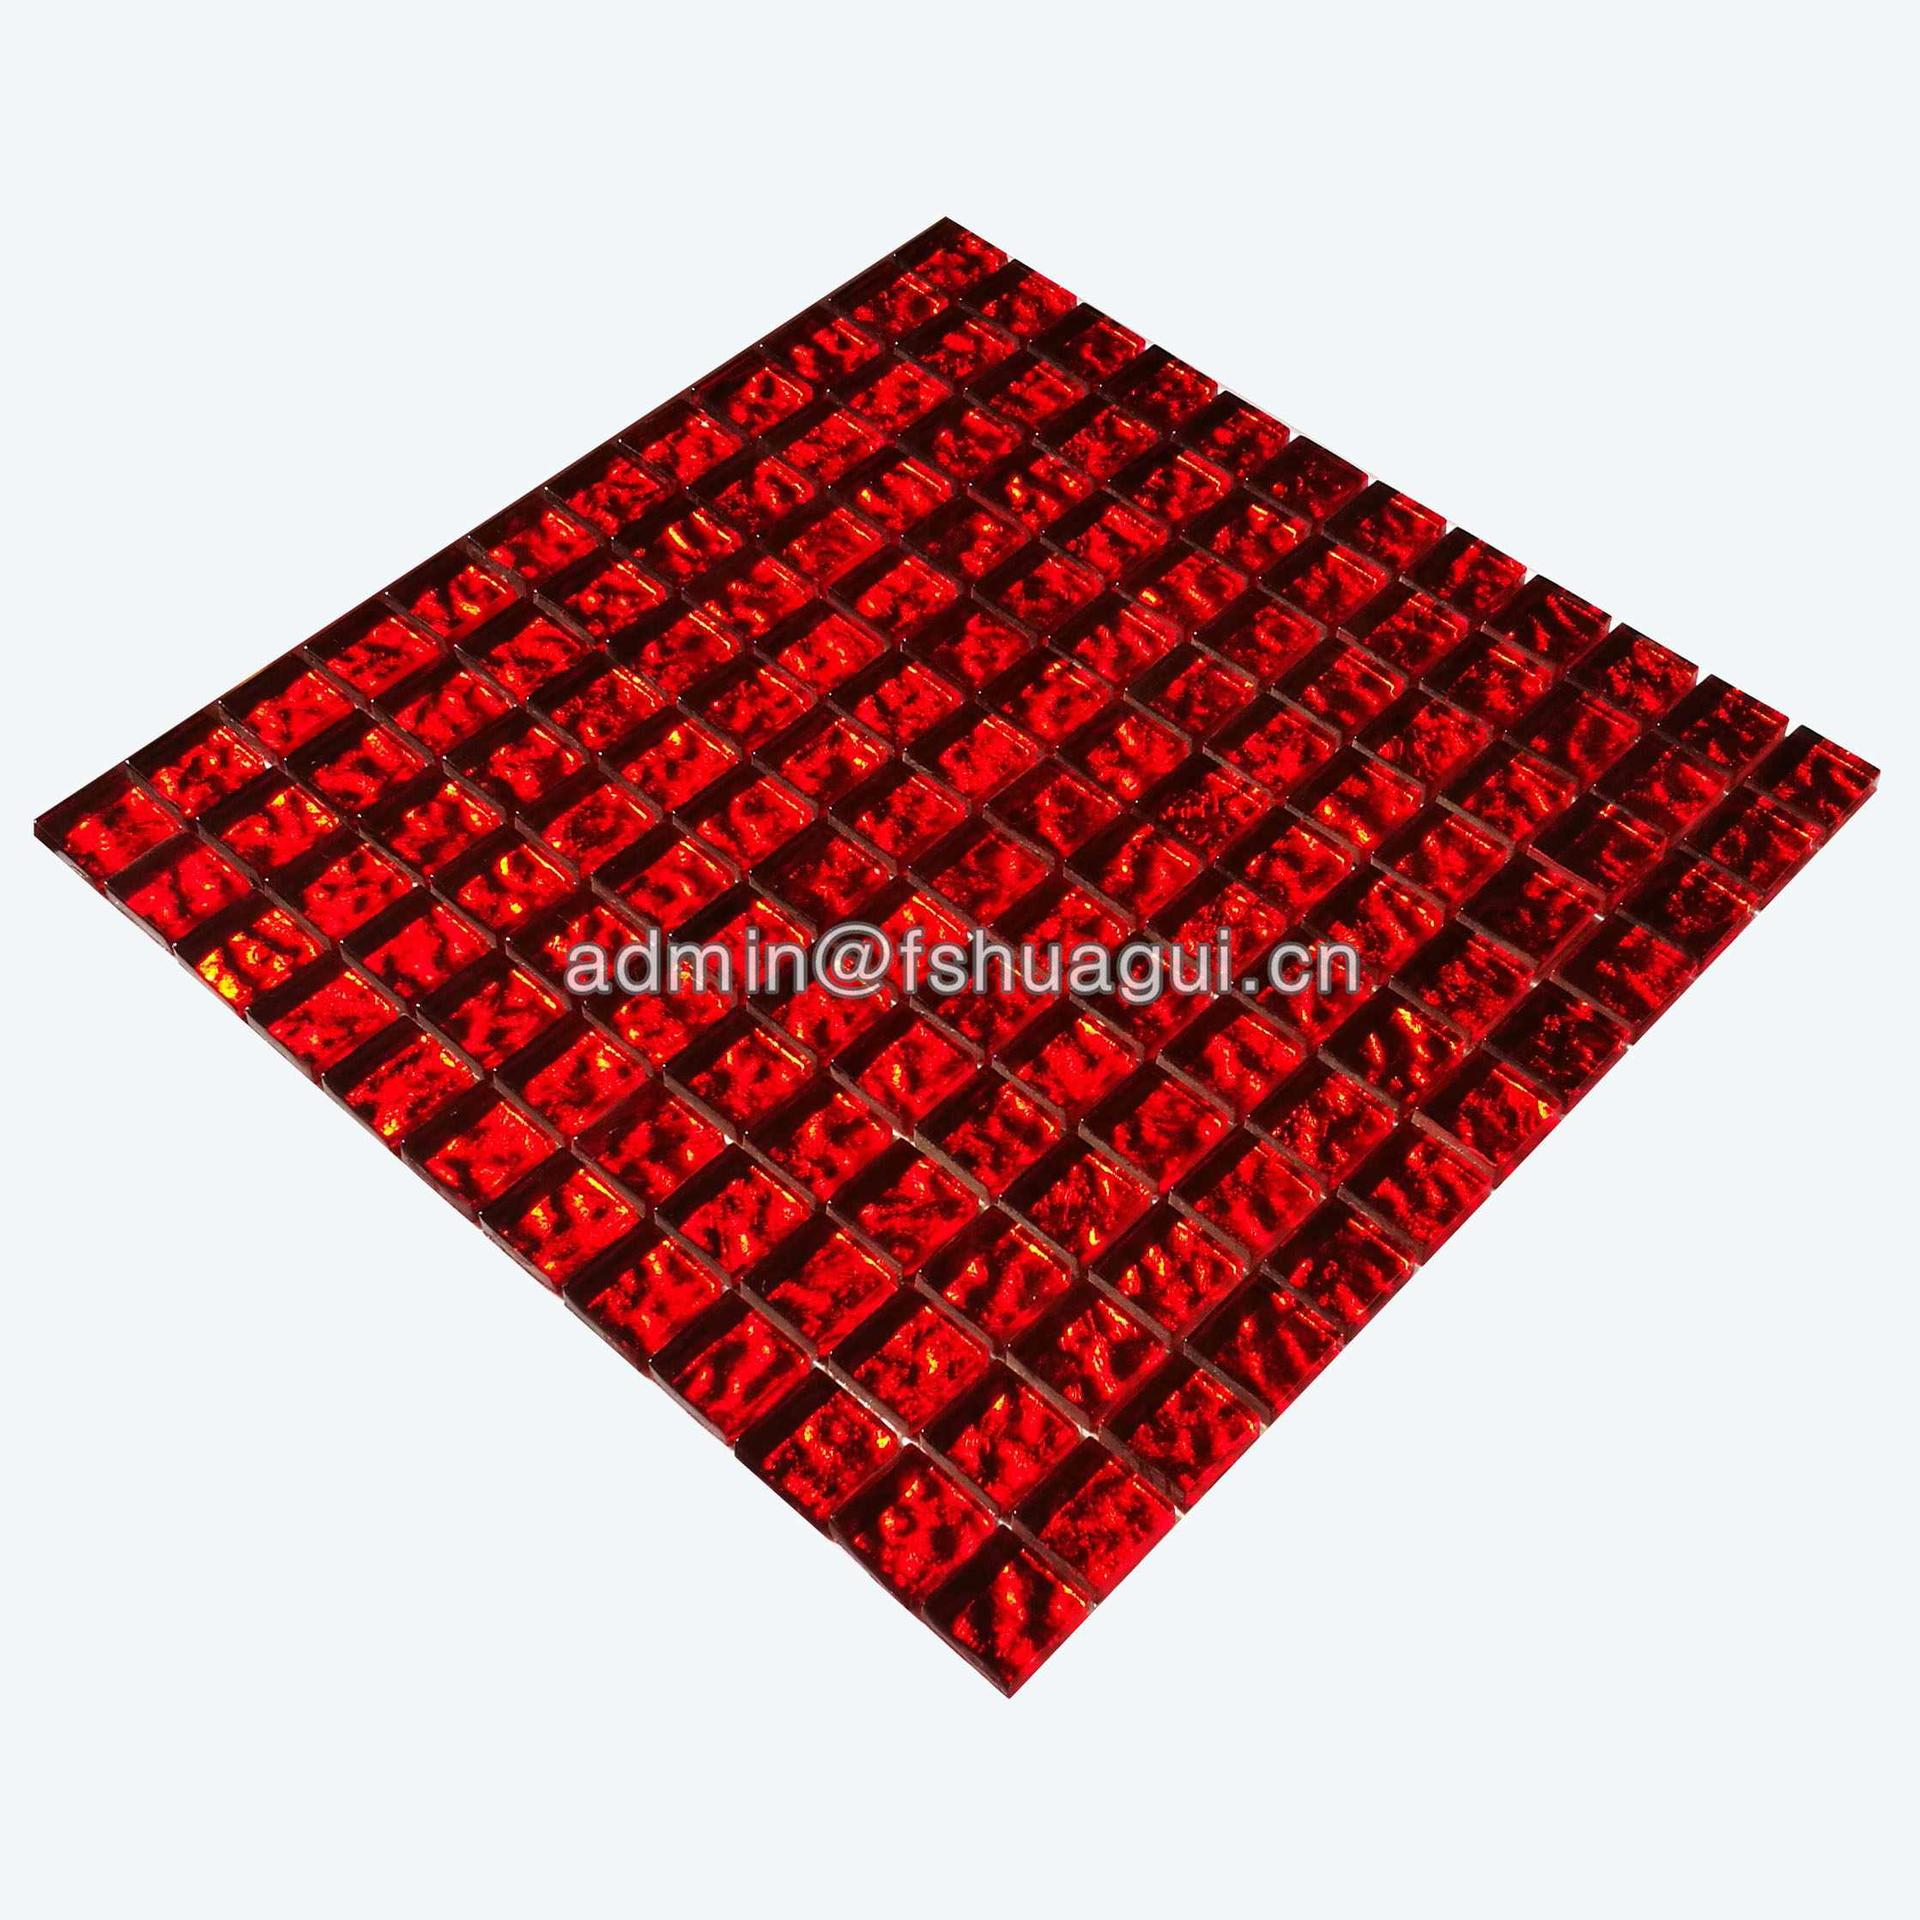 Square red crystal glass mosaic wall decoration tile